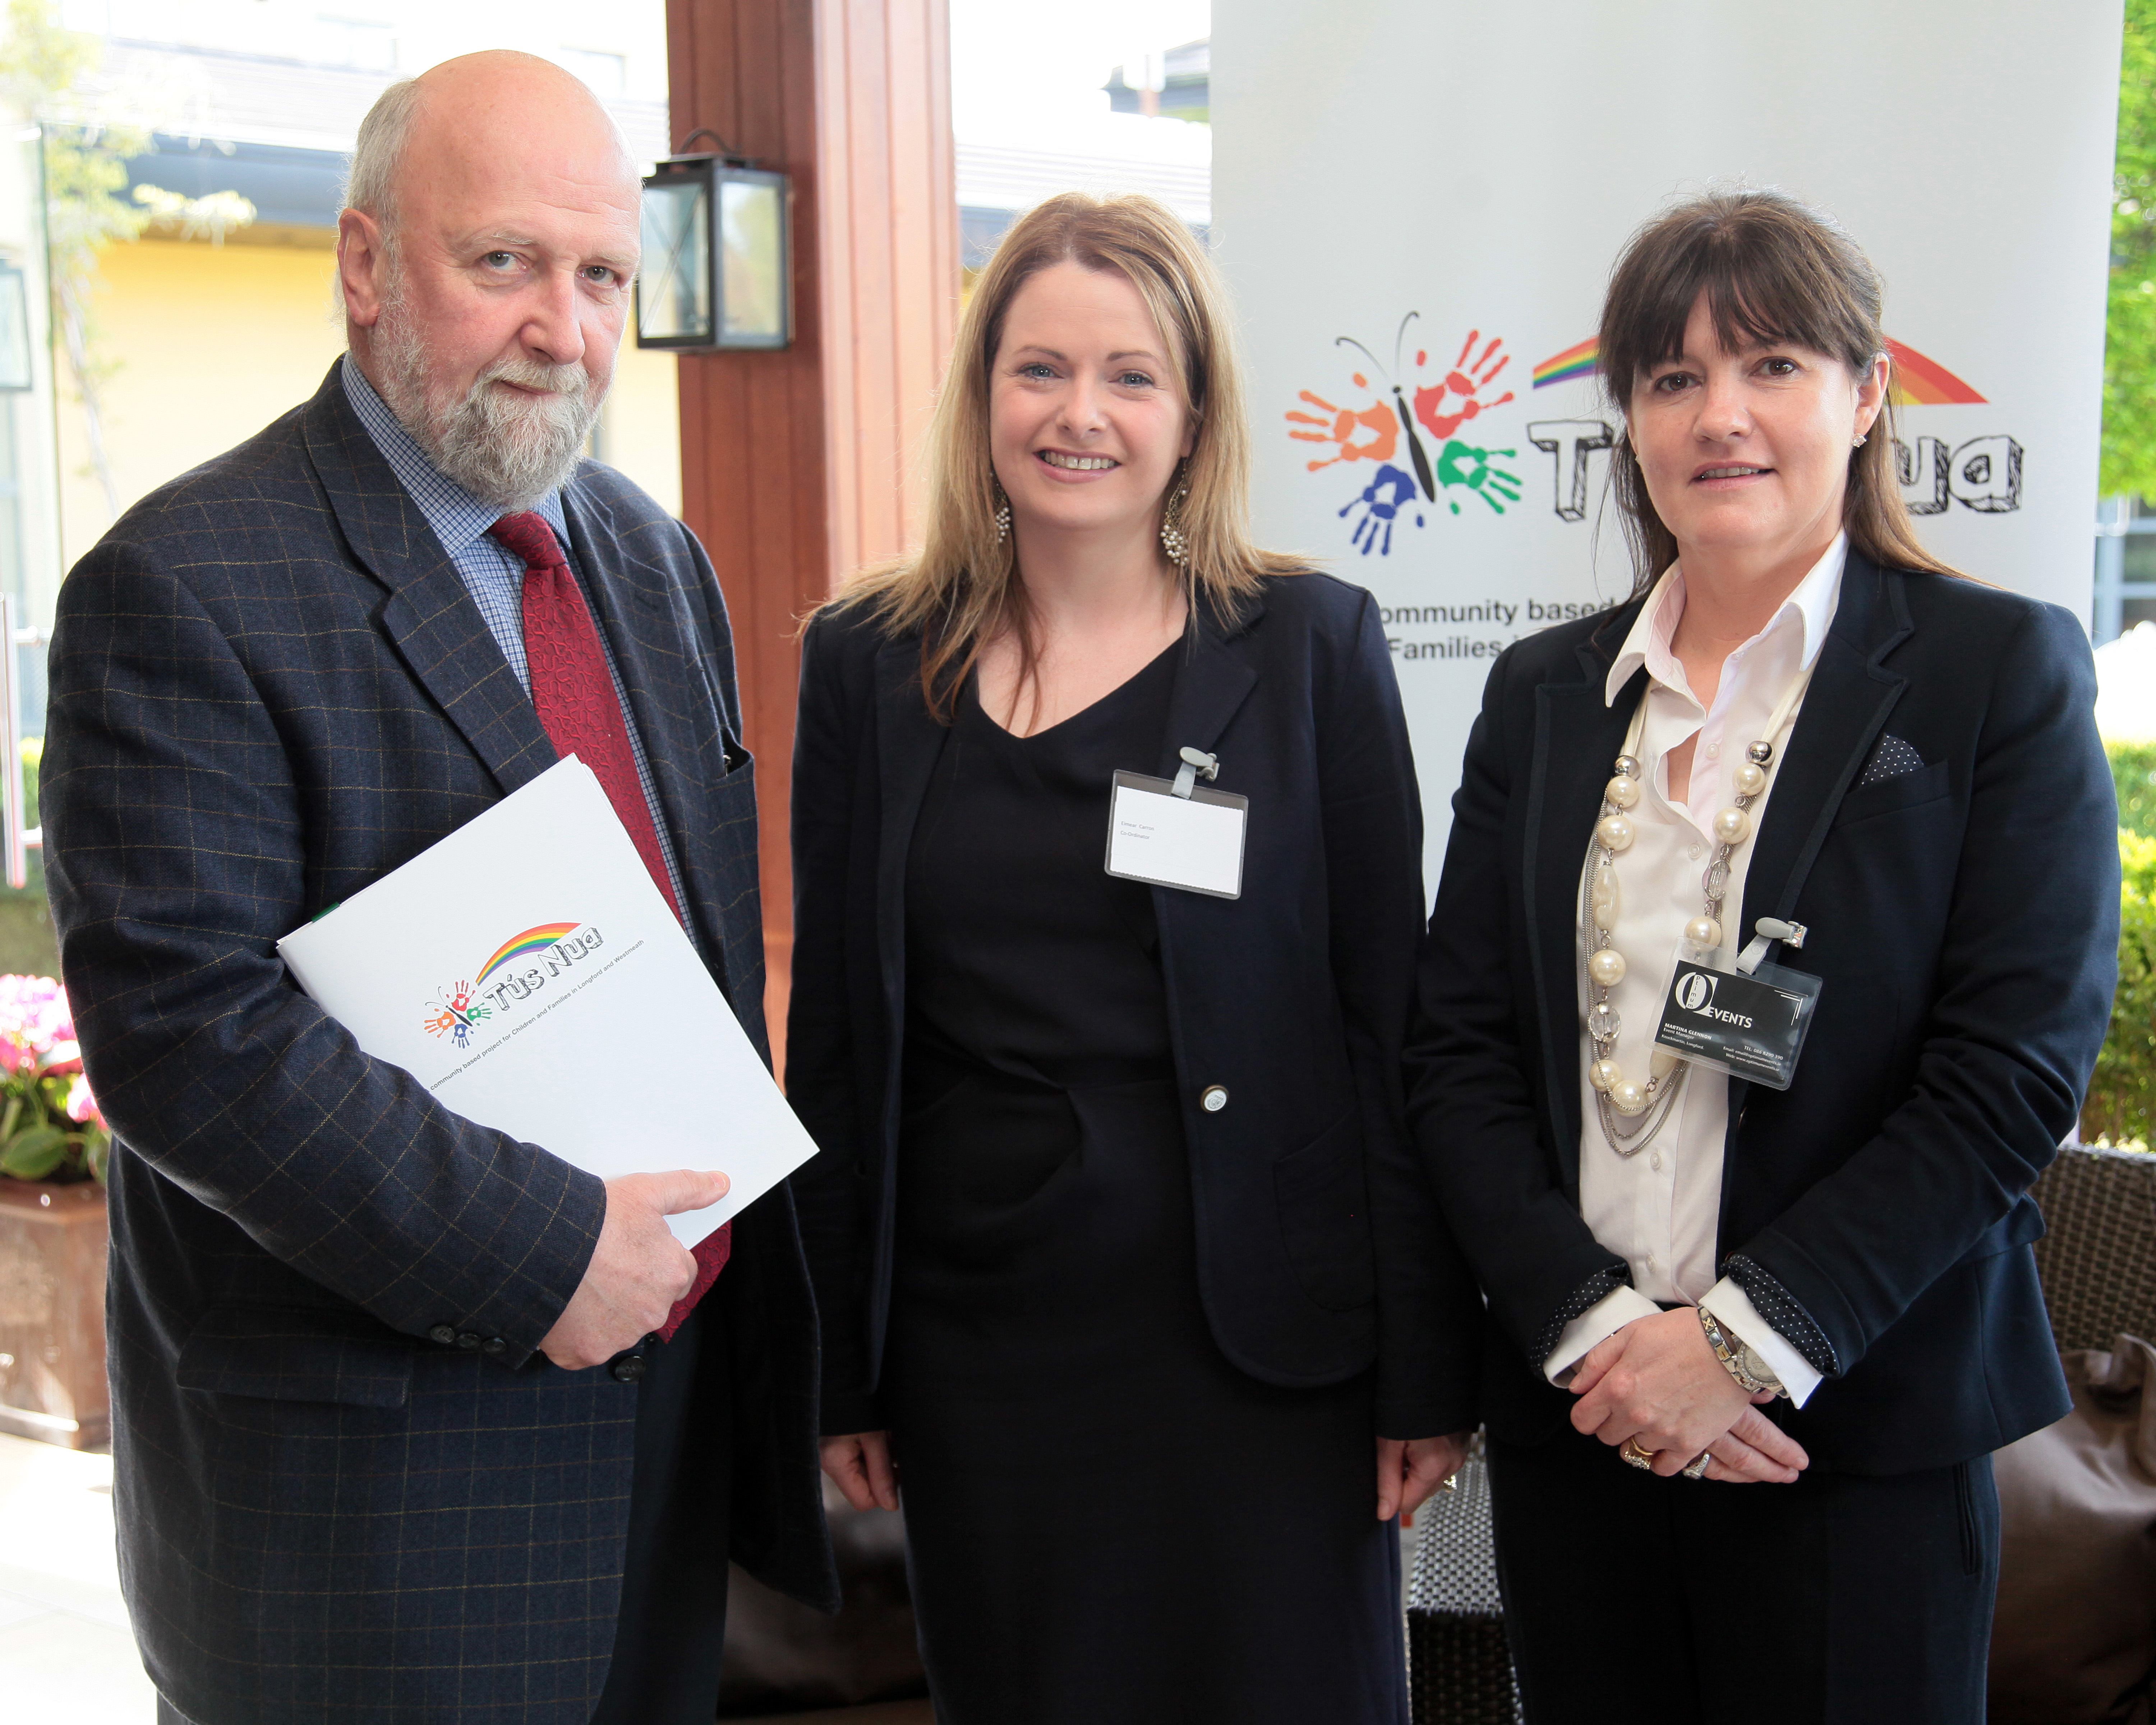 Fergus Finlay as keynote speaker at Tús event with Eimear Carron Longford CCC and Martina Glennon